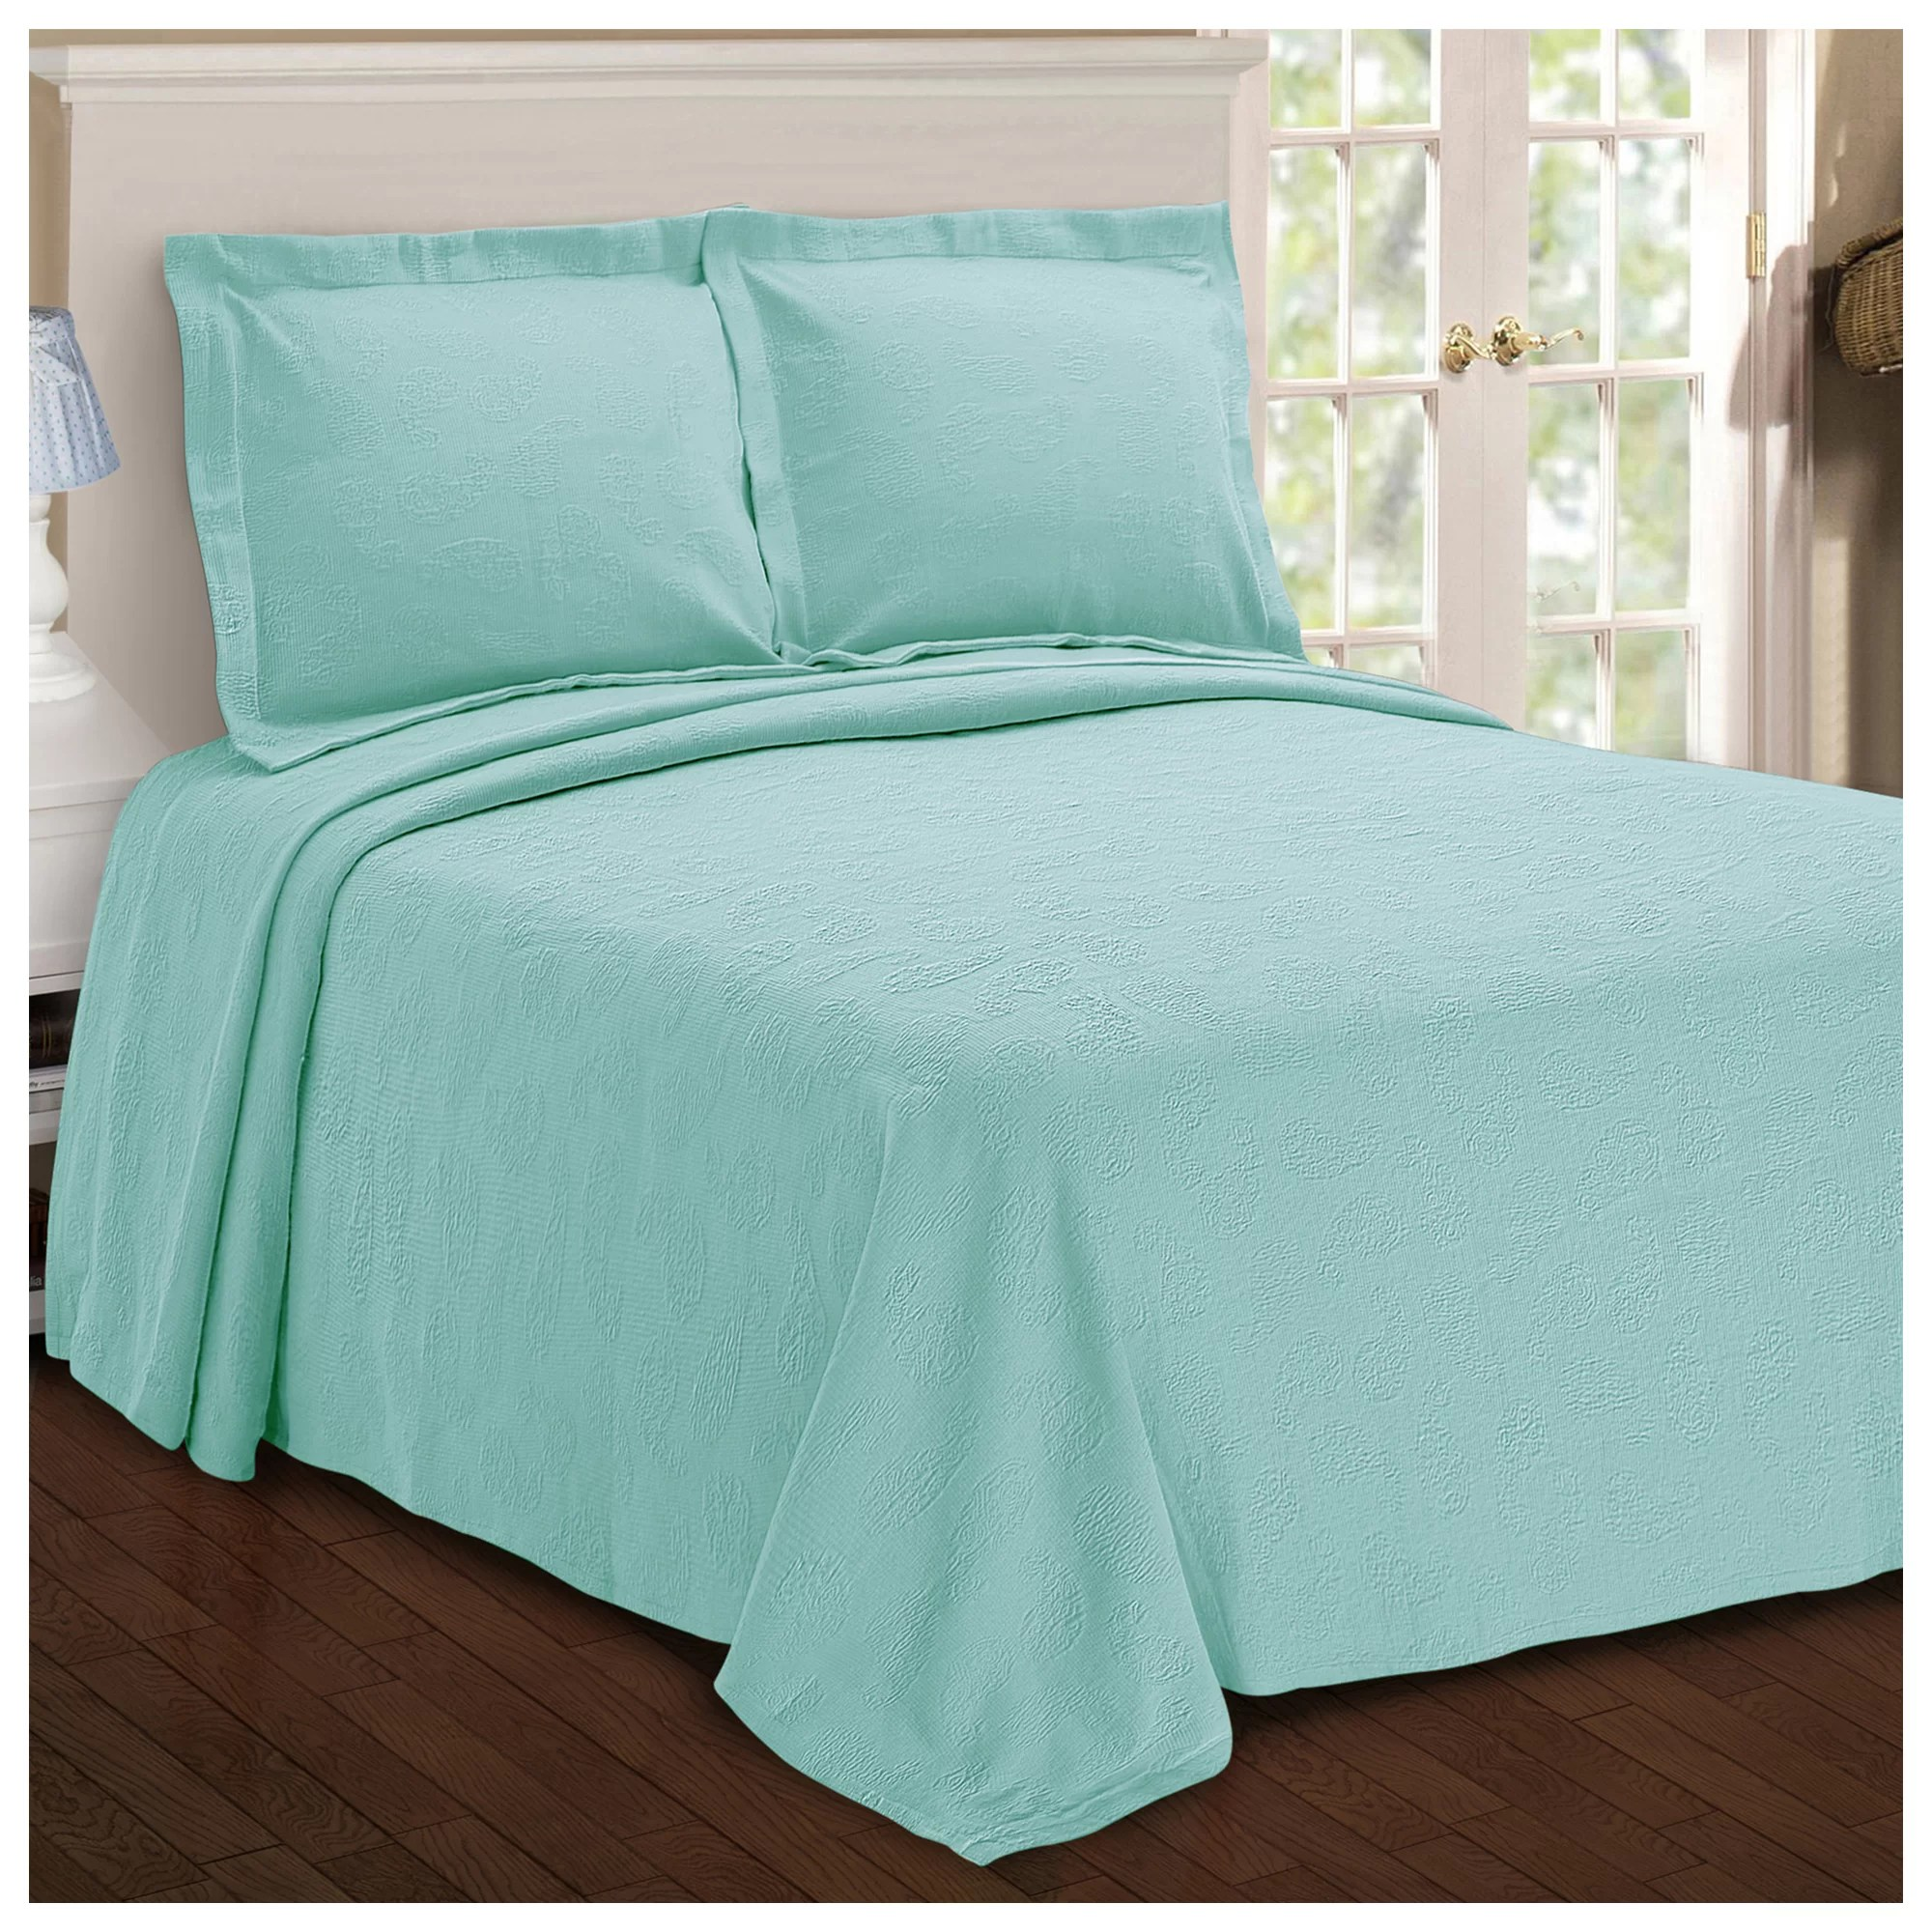 Single Coverlet Benito Single Coverlet